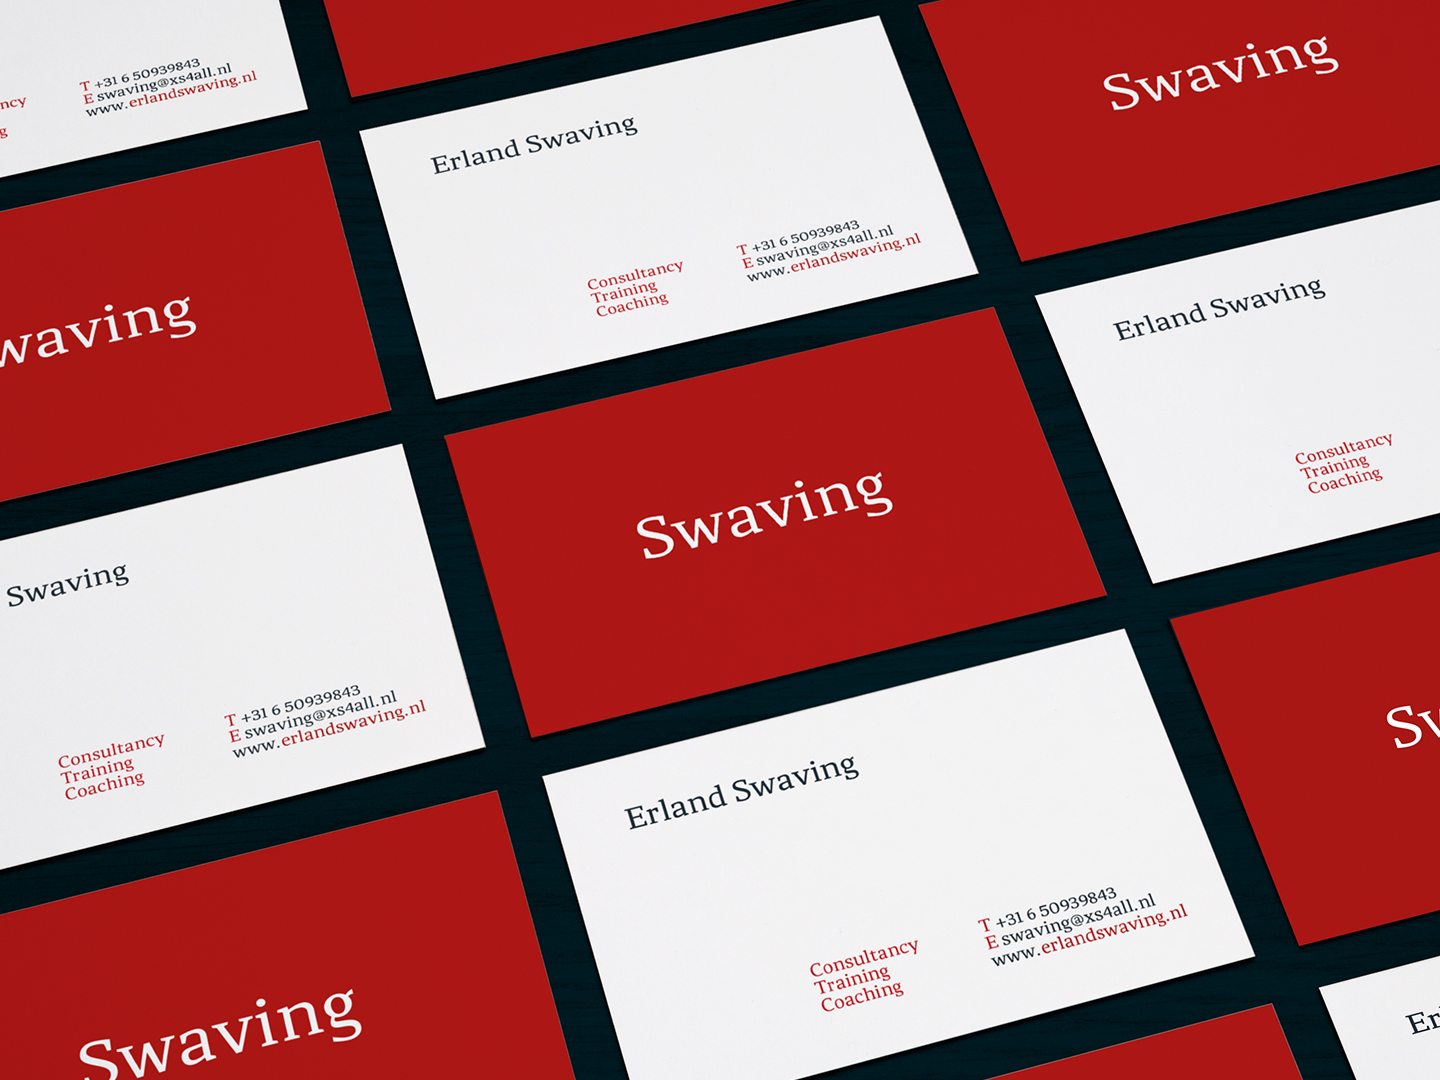 Swaving_businessCard_1440x1080